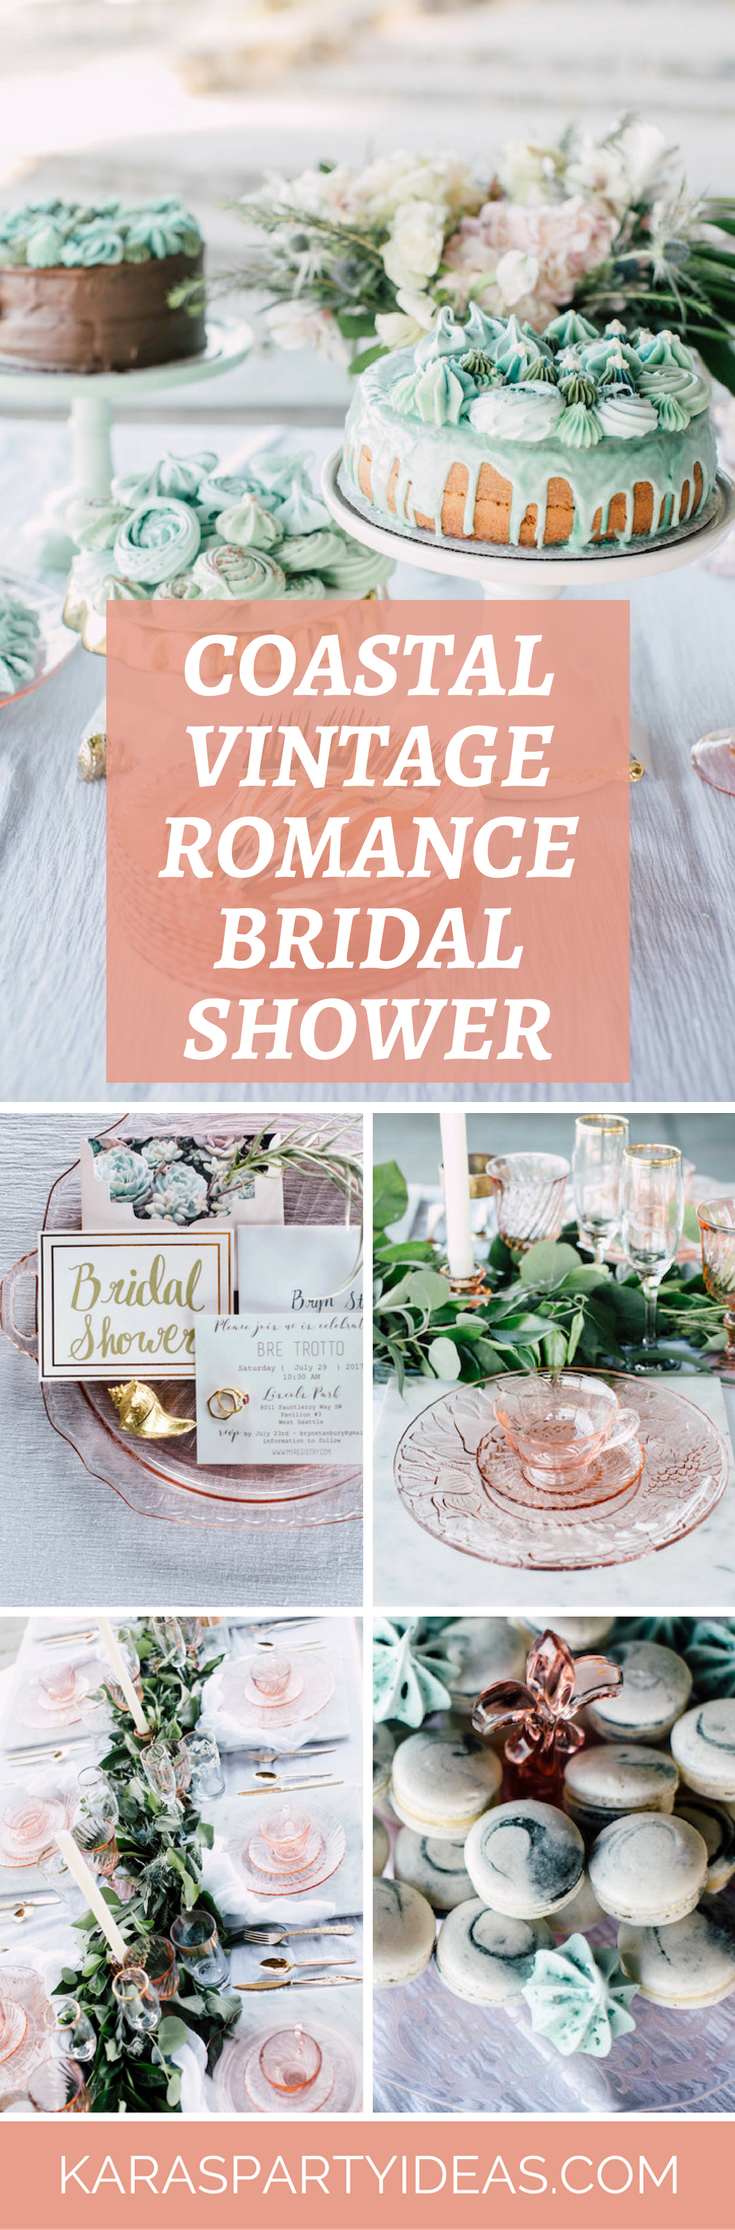 Coastal Vintage Romance Bridal Shower via Kara's Party Ideas - KarasPartyIdeas.com